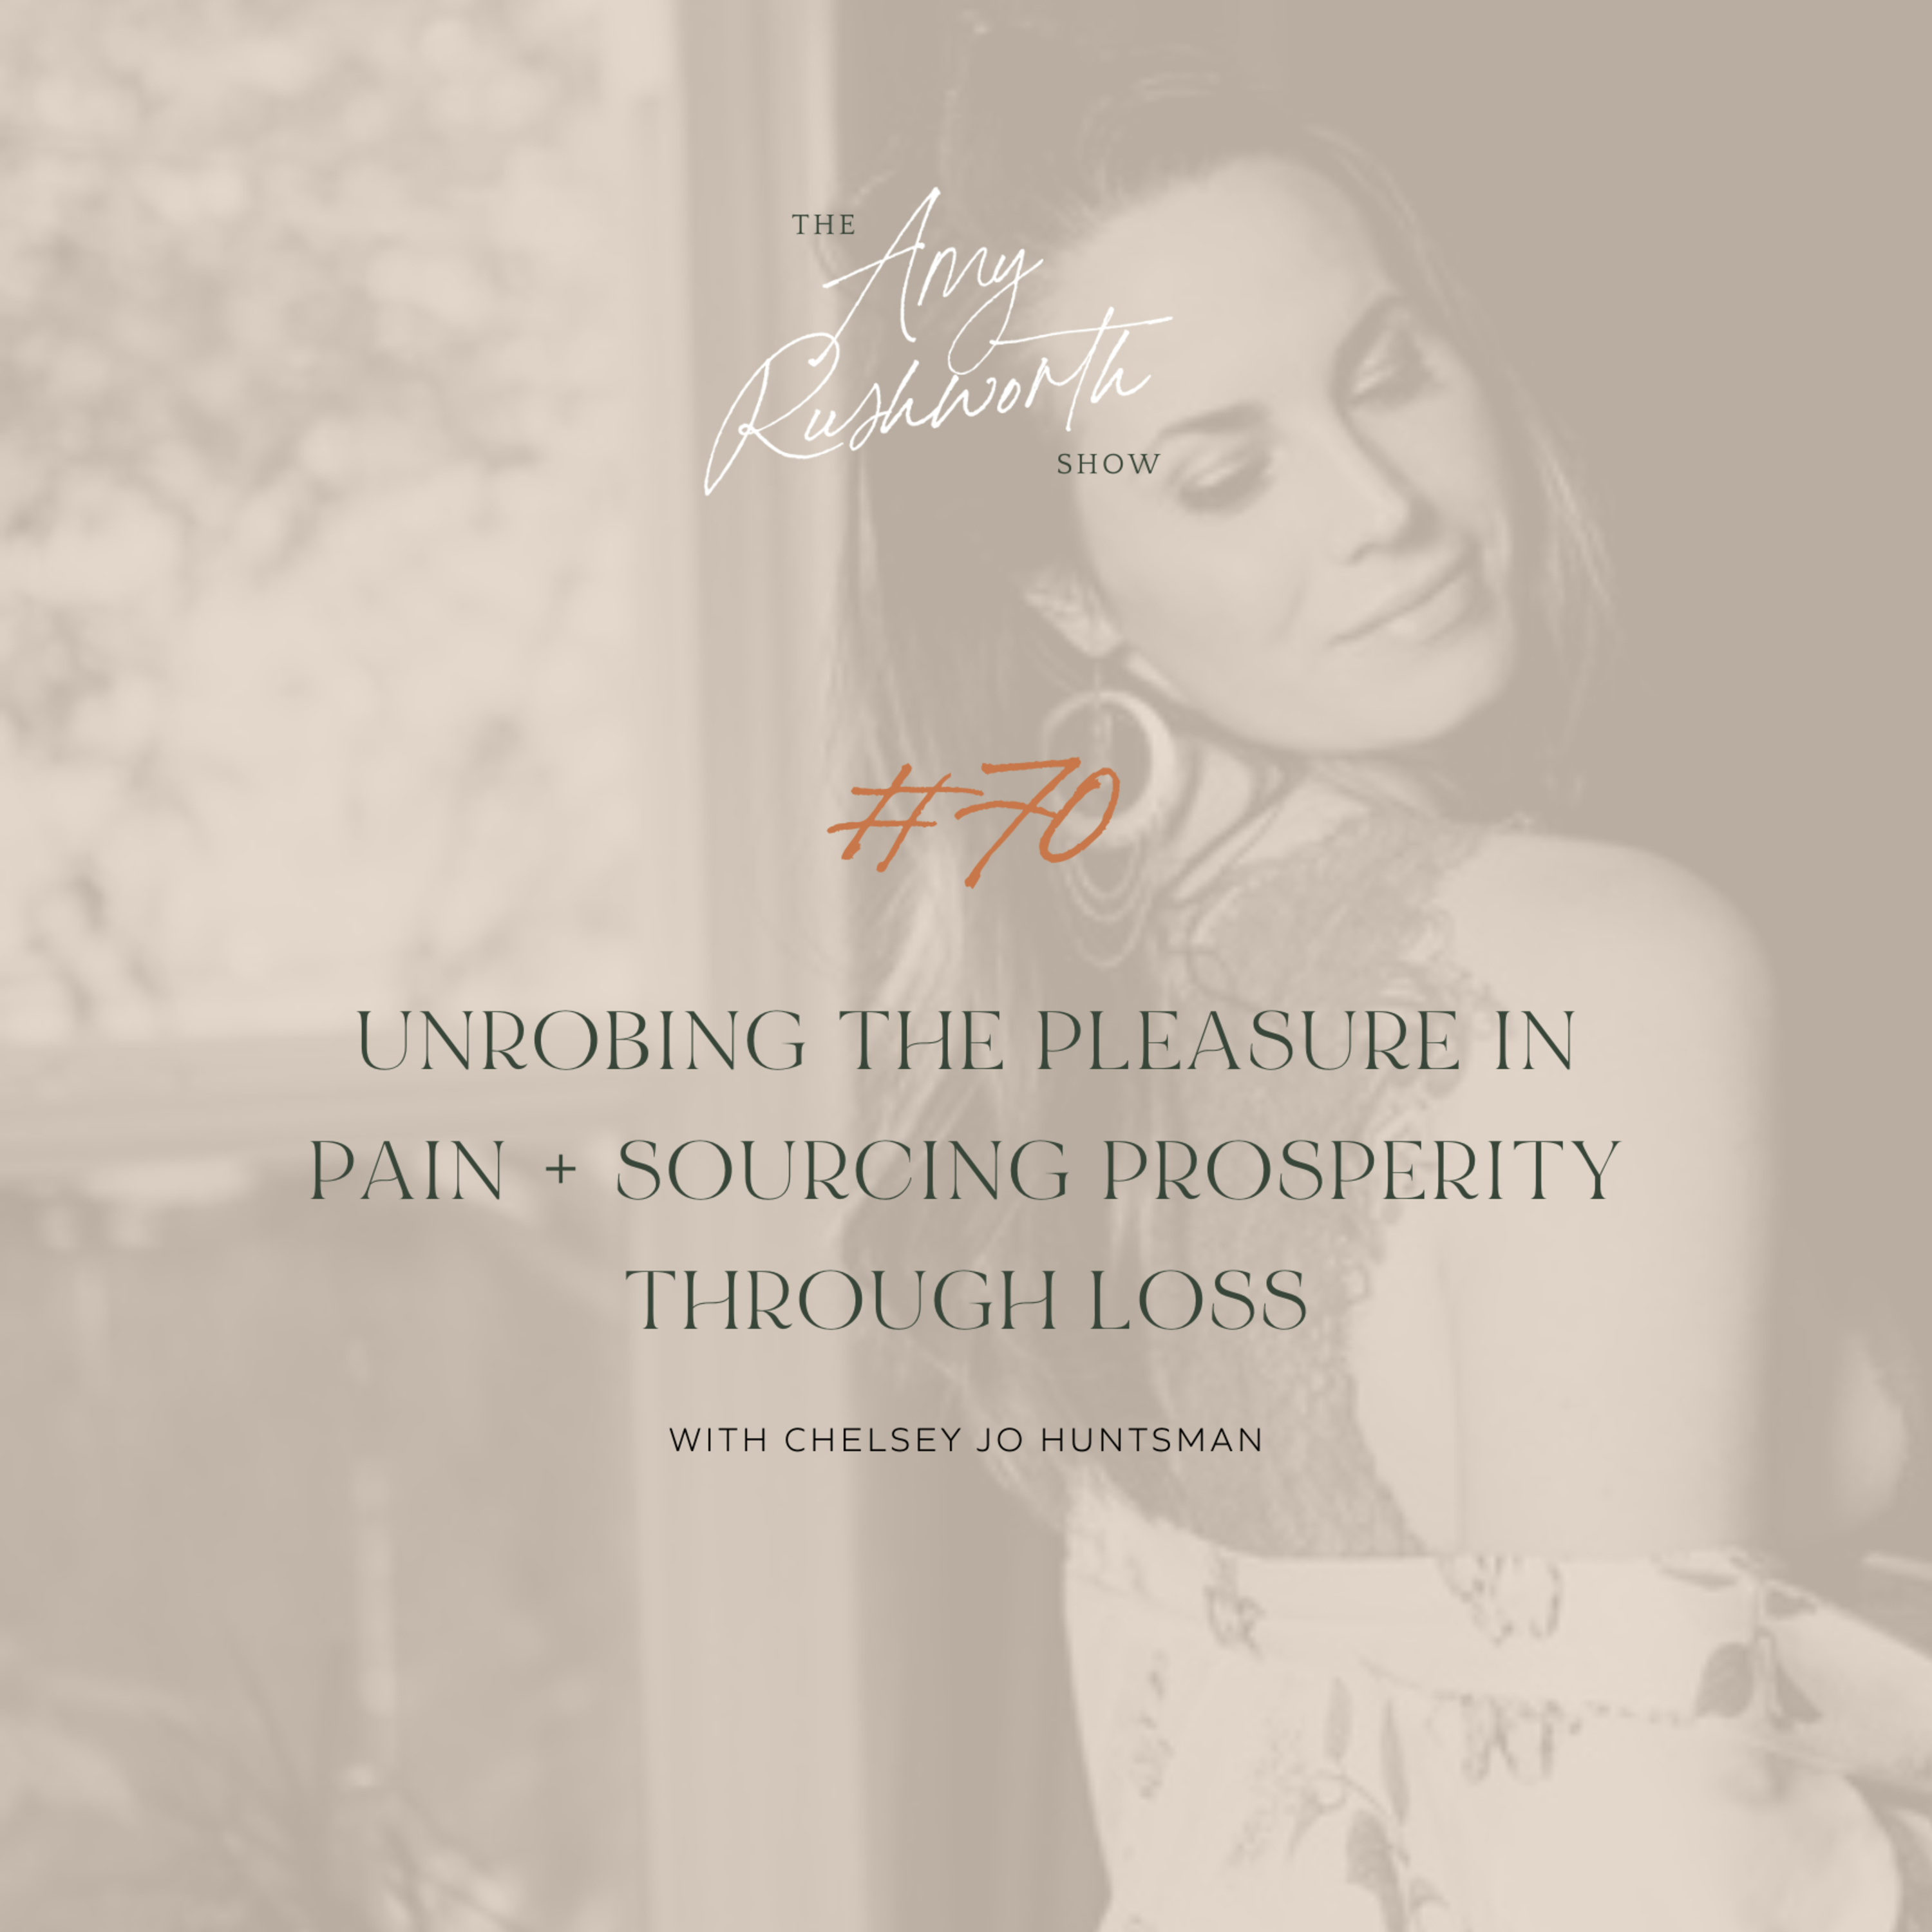 70 - Unrobing the Pleasure in Pain + Sourcing Prosperity Through Loss with Chelsey Jo Huntsman